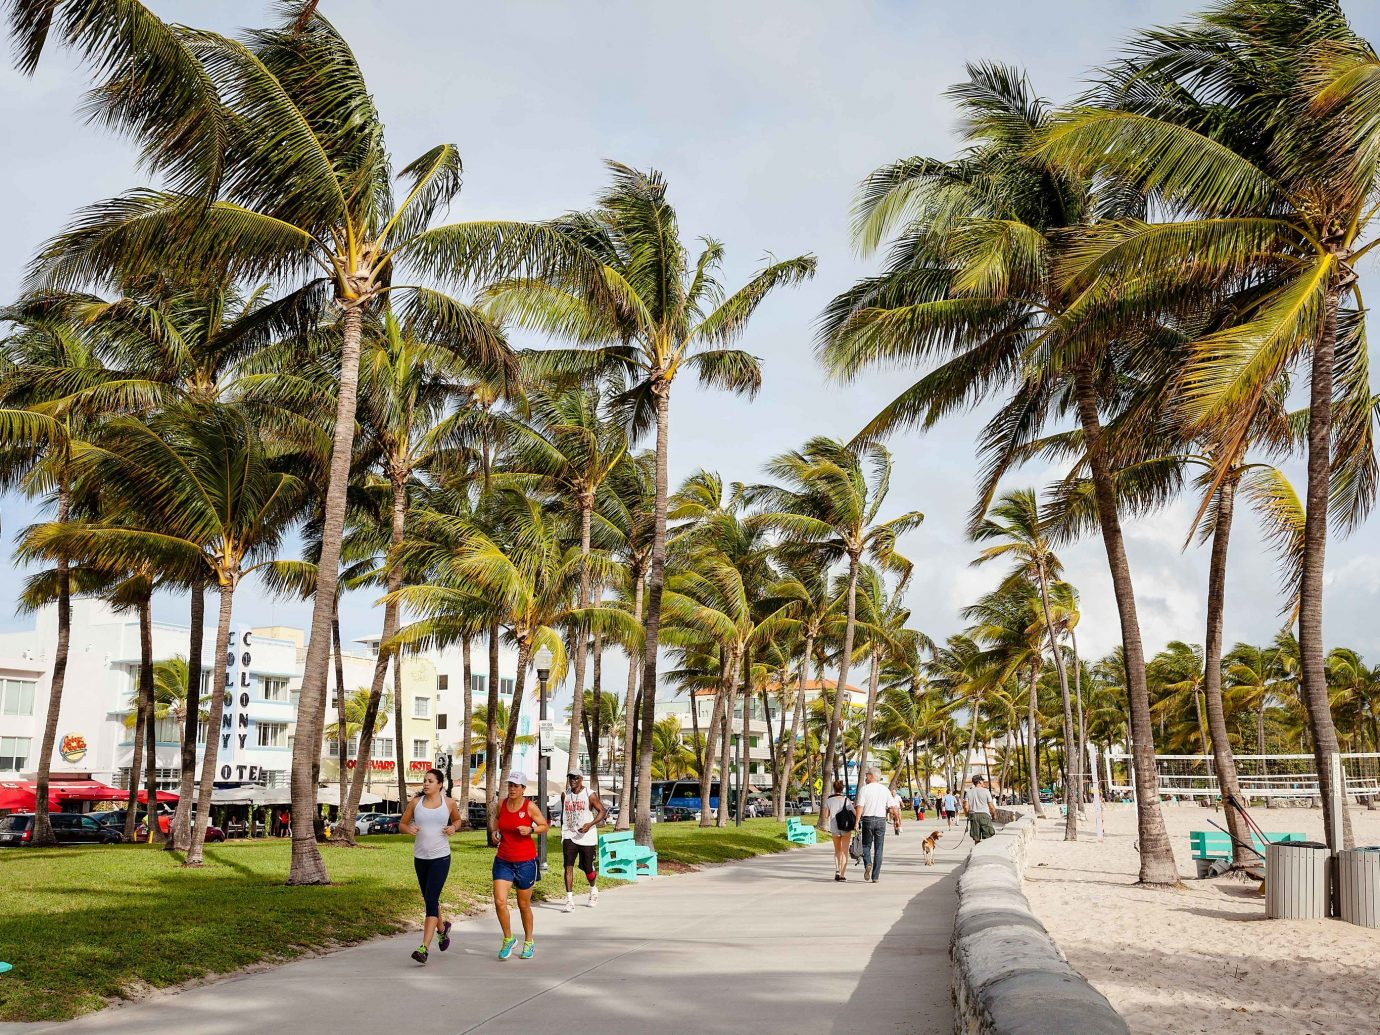 East Coast USA Trip Ideas tree palm tree woody plant arecales plant Resort sky water Beach vacation tropics leisure tourism walkway boardwalk recreation real estate City